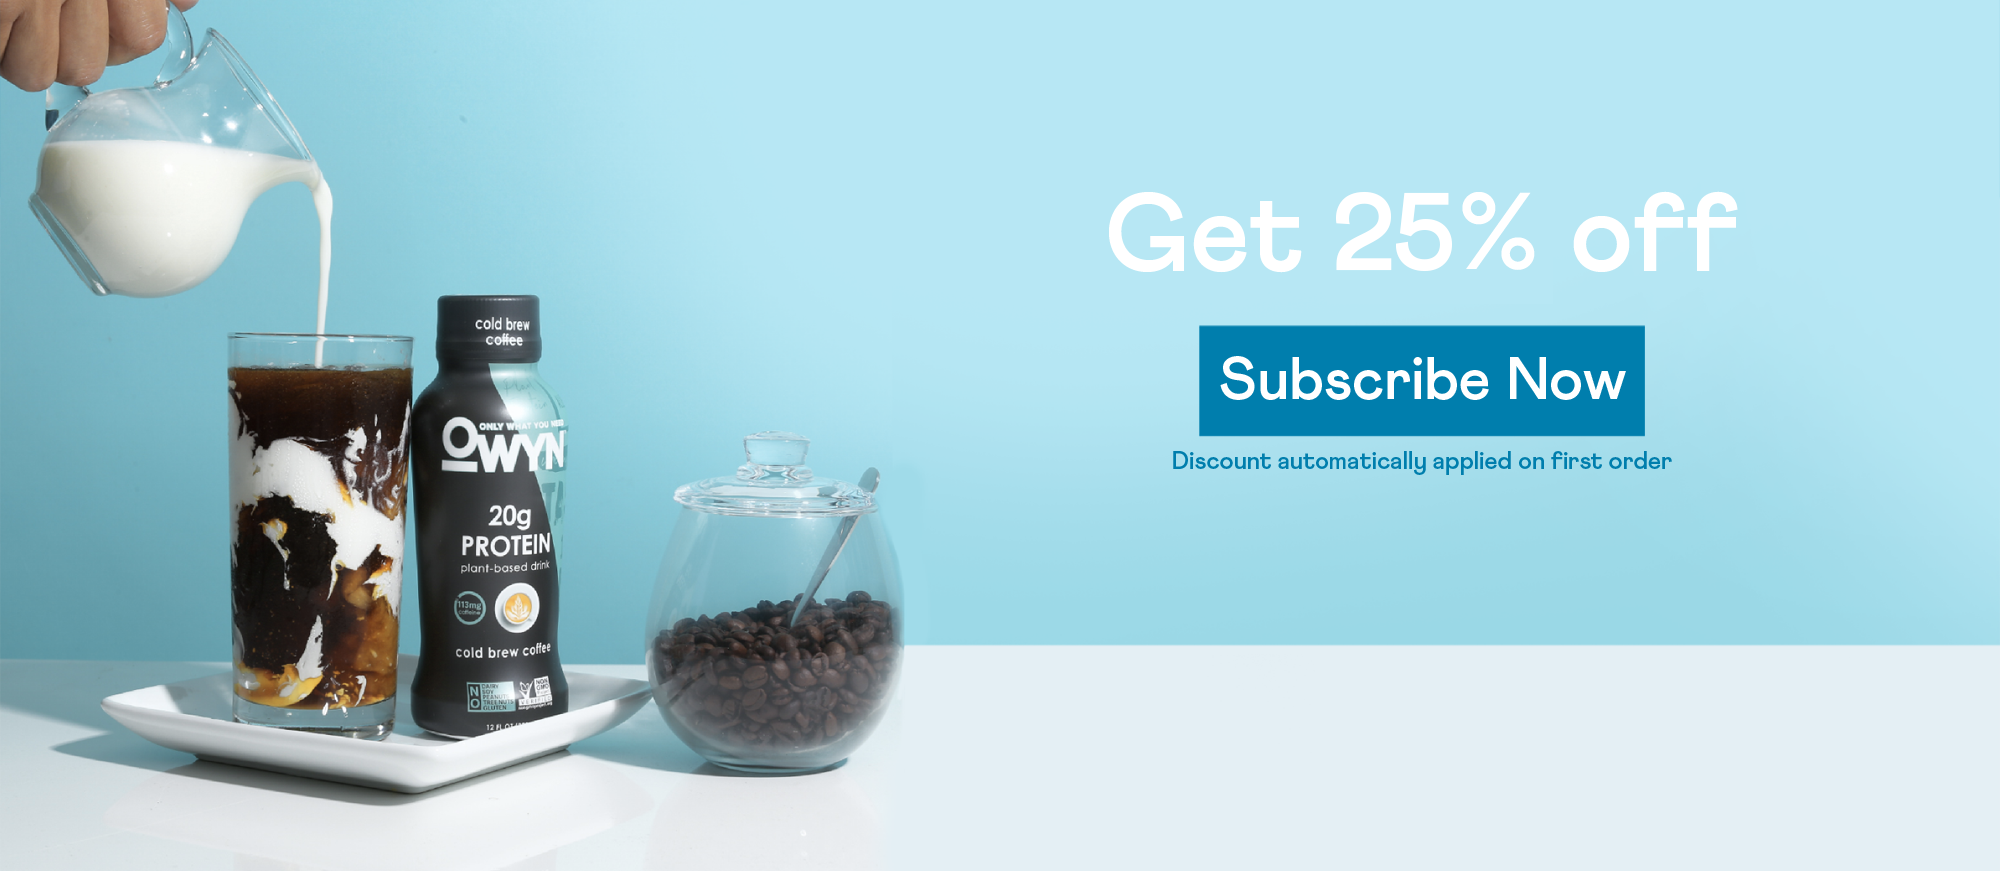 Get 25% off - Subscribe Now